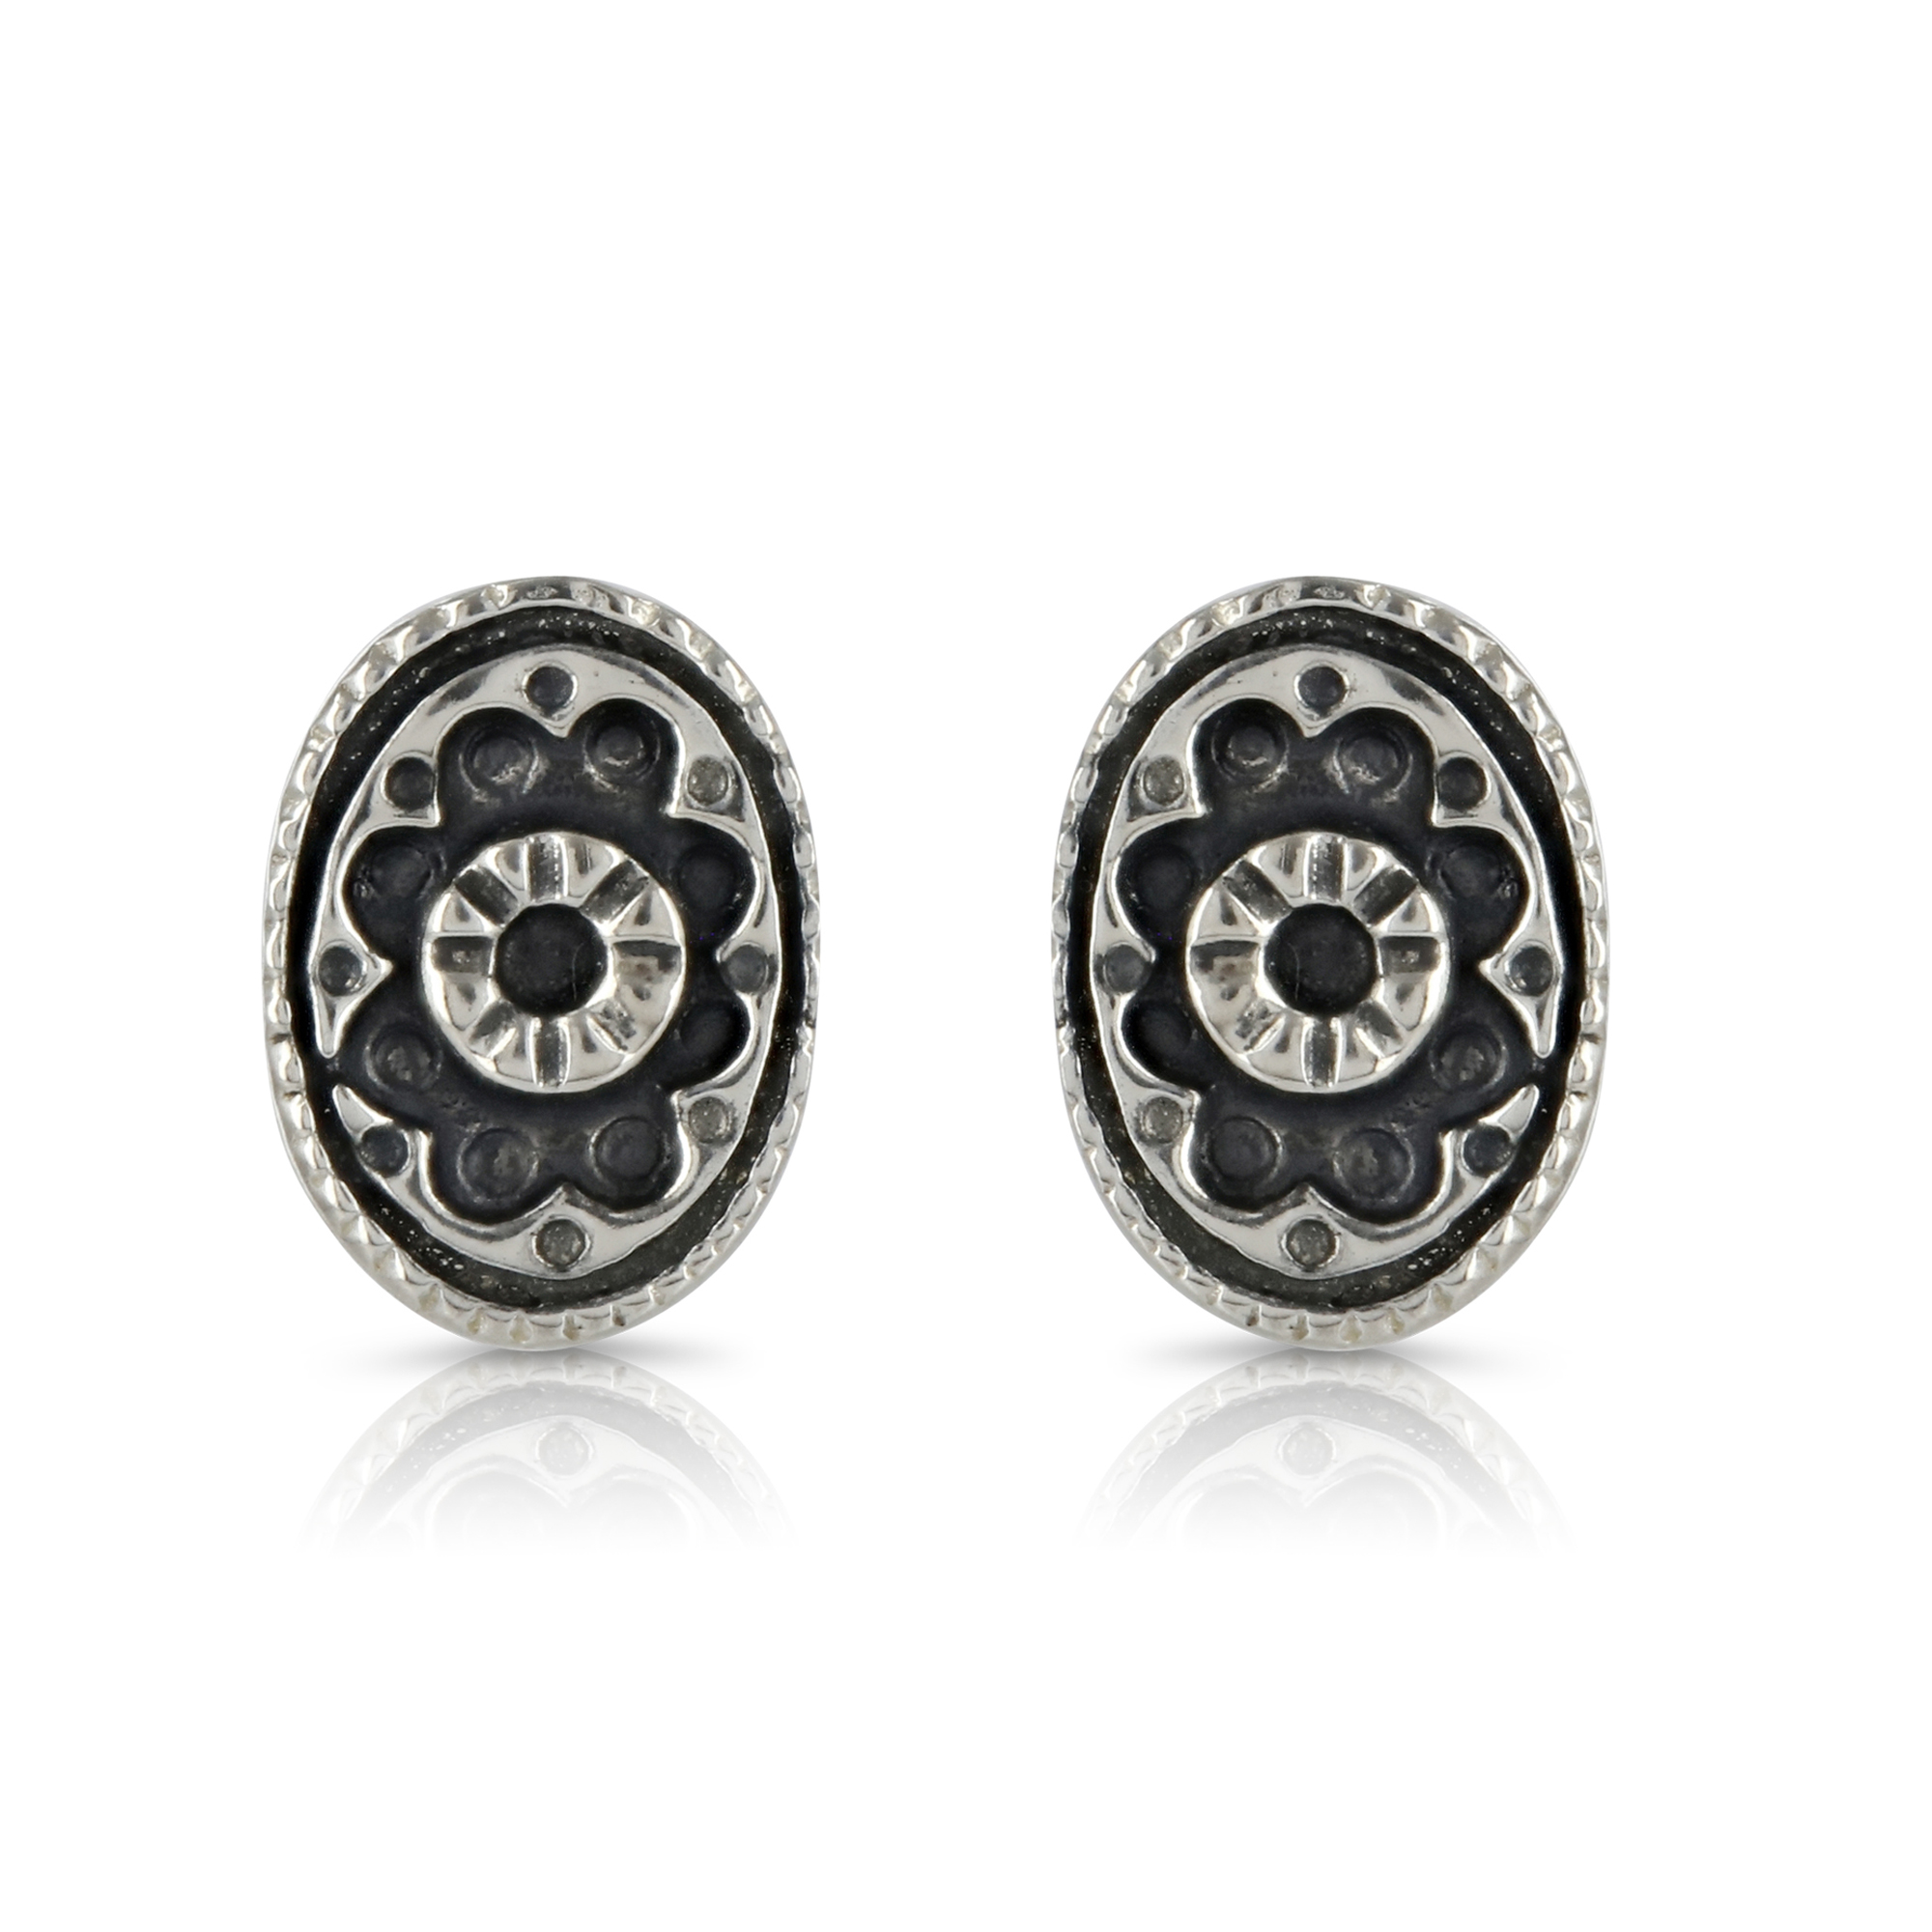 Silver Oval Stud Earrings by Prey Jewellery